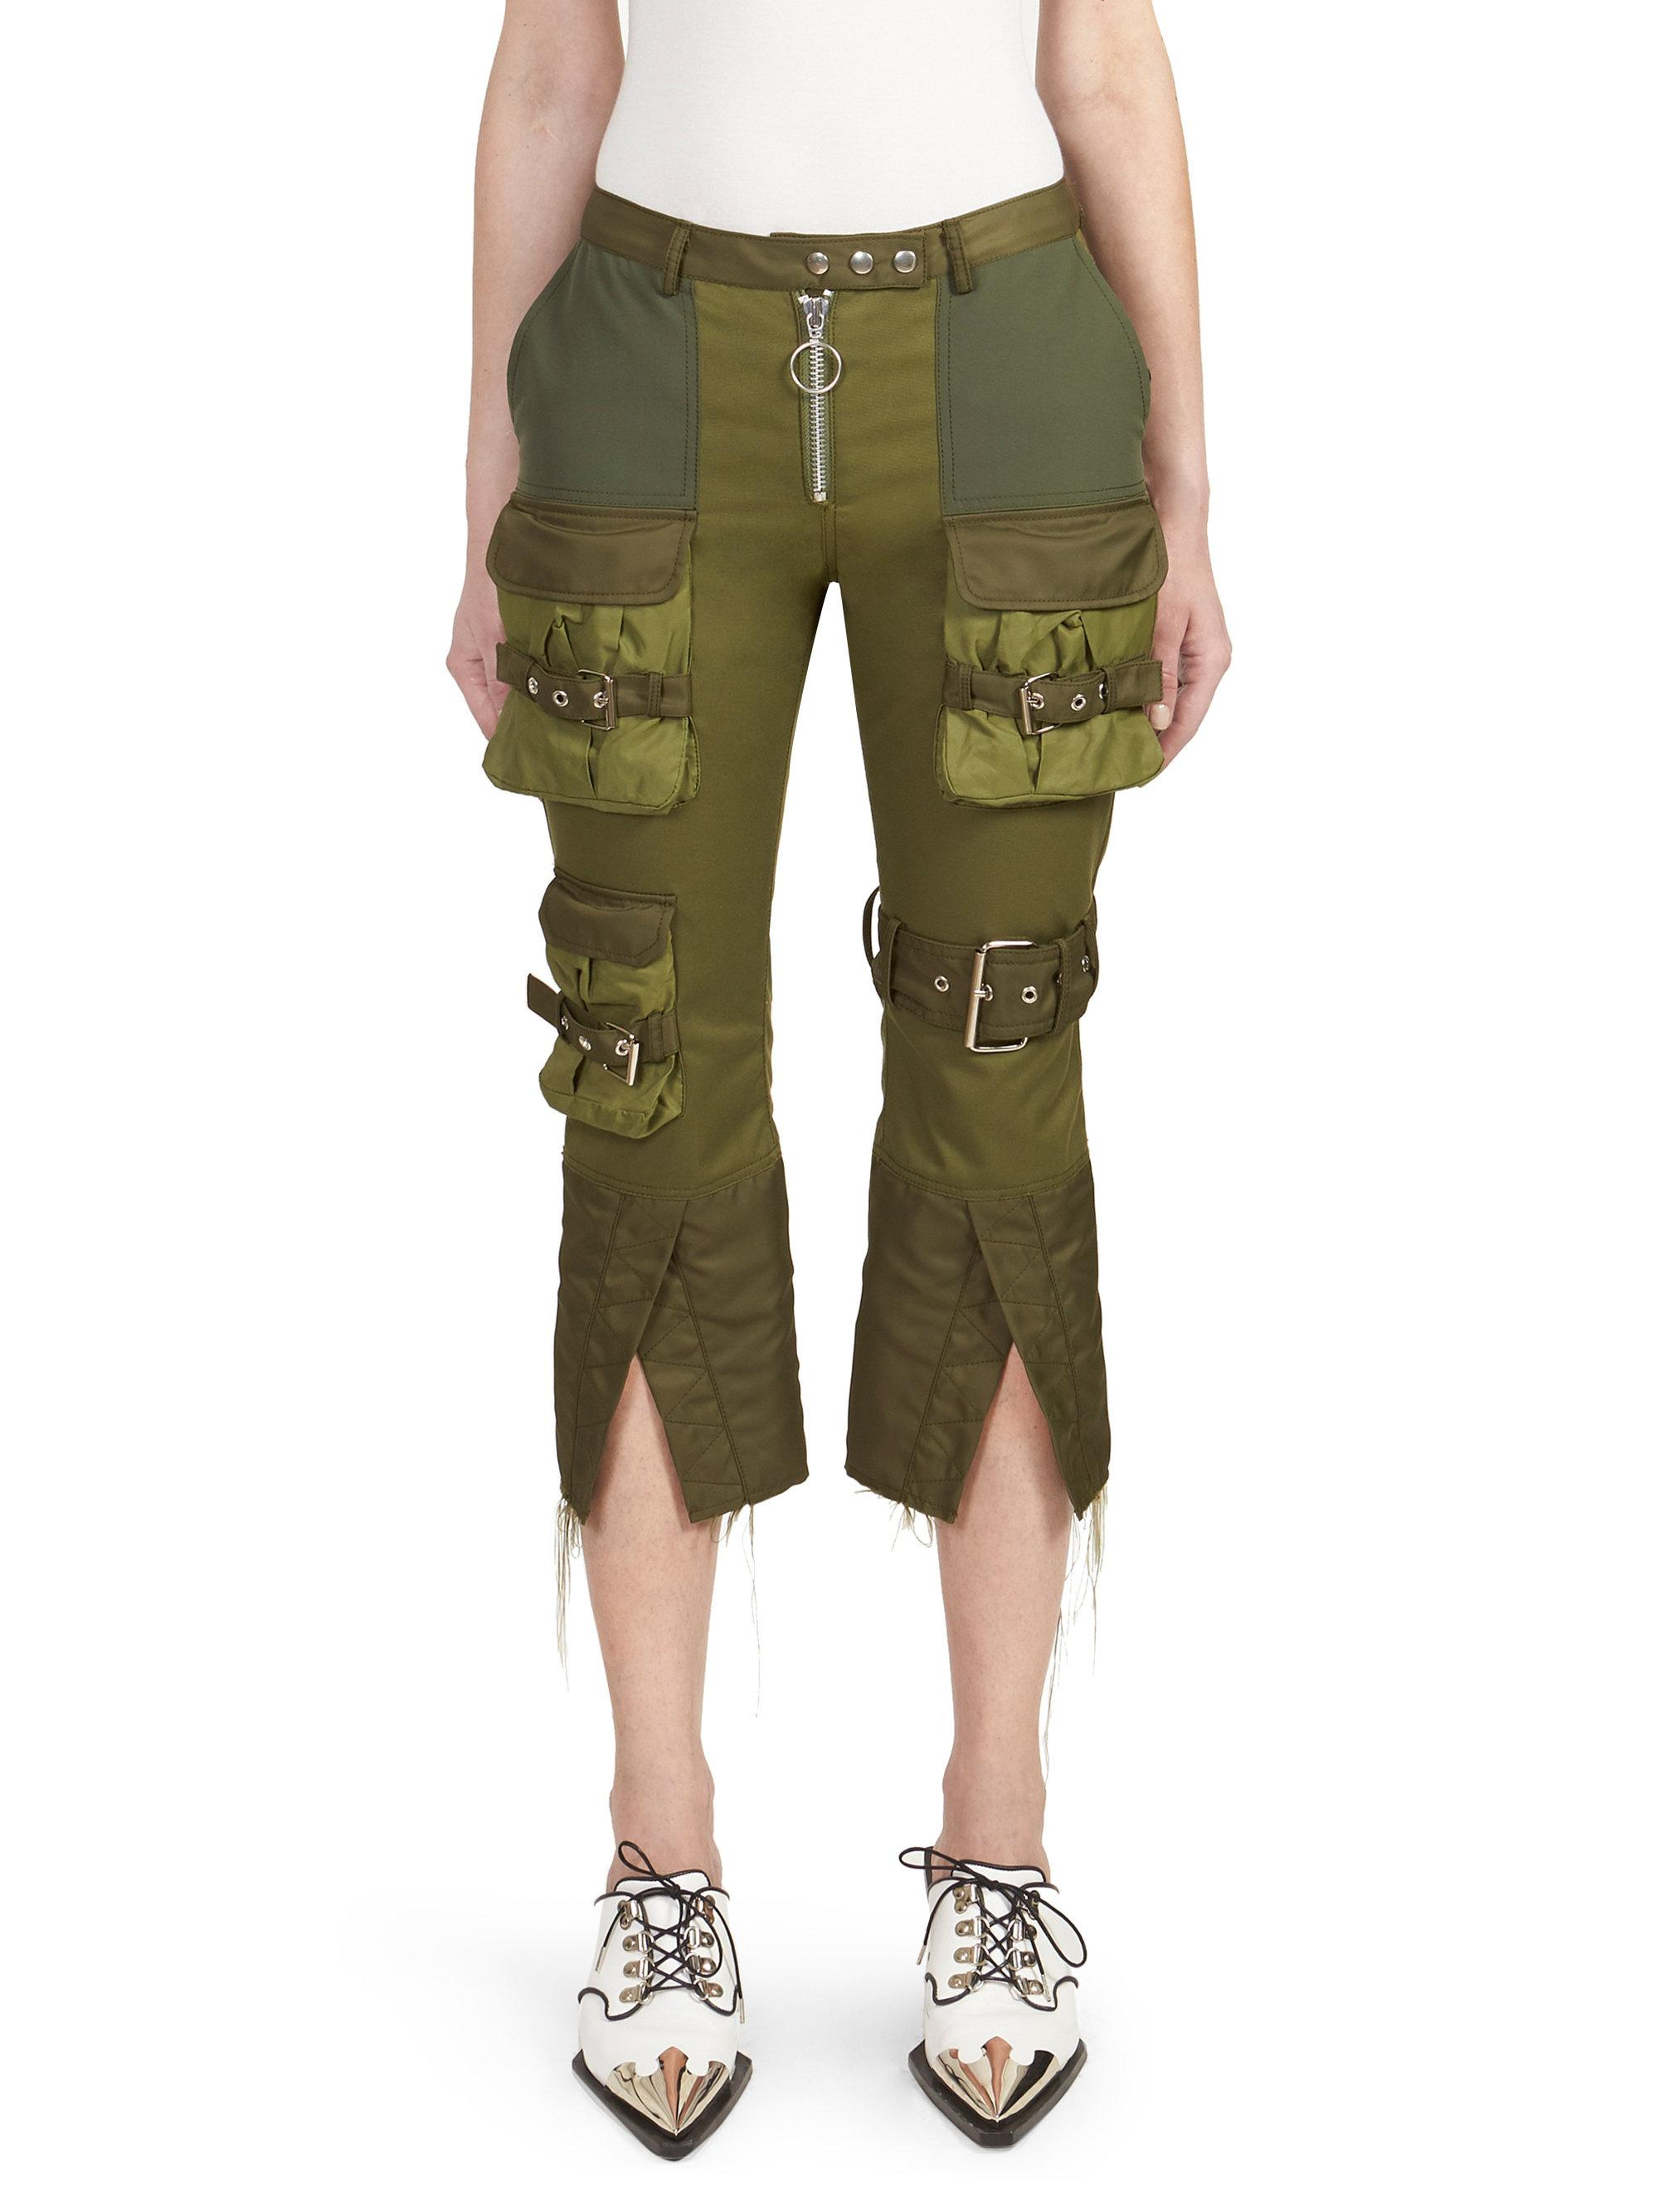 Patchwork Marques'almeida Cargo In Green Pants Lyst N8OPkX0Znw